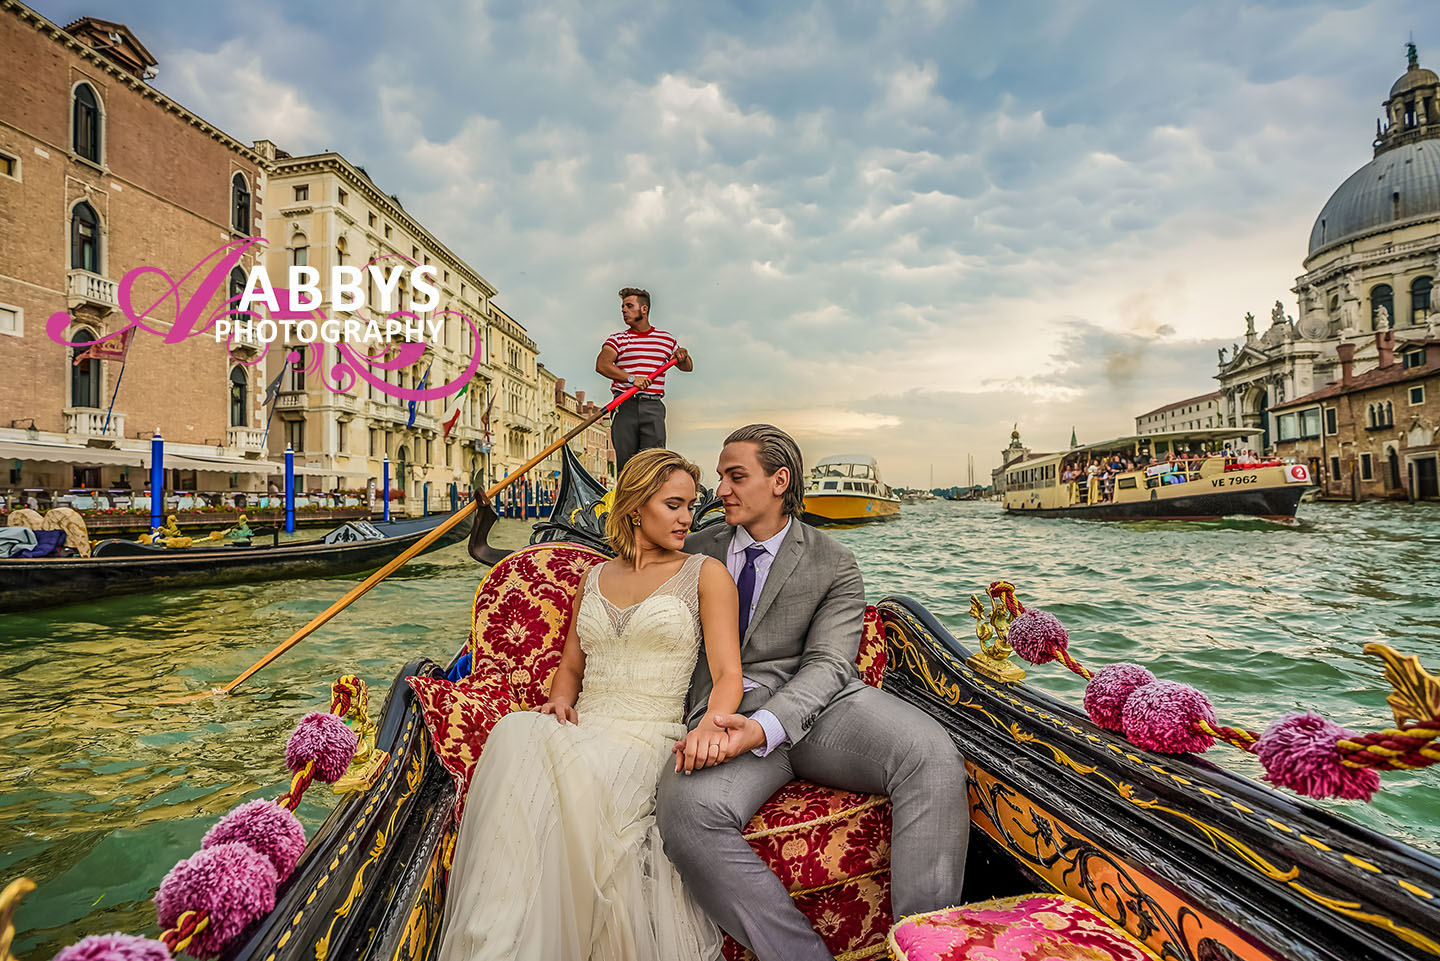 Abbys Photography can make you feel like your wedding or engagement is in Venice instead of Ventura County.